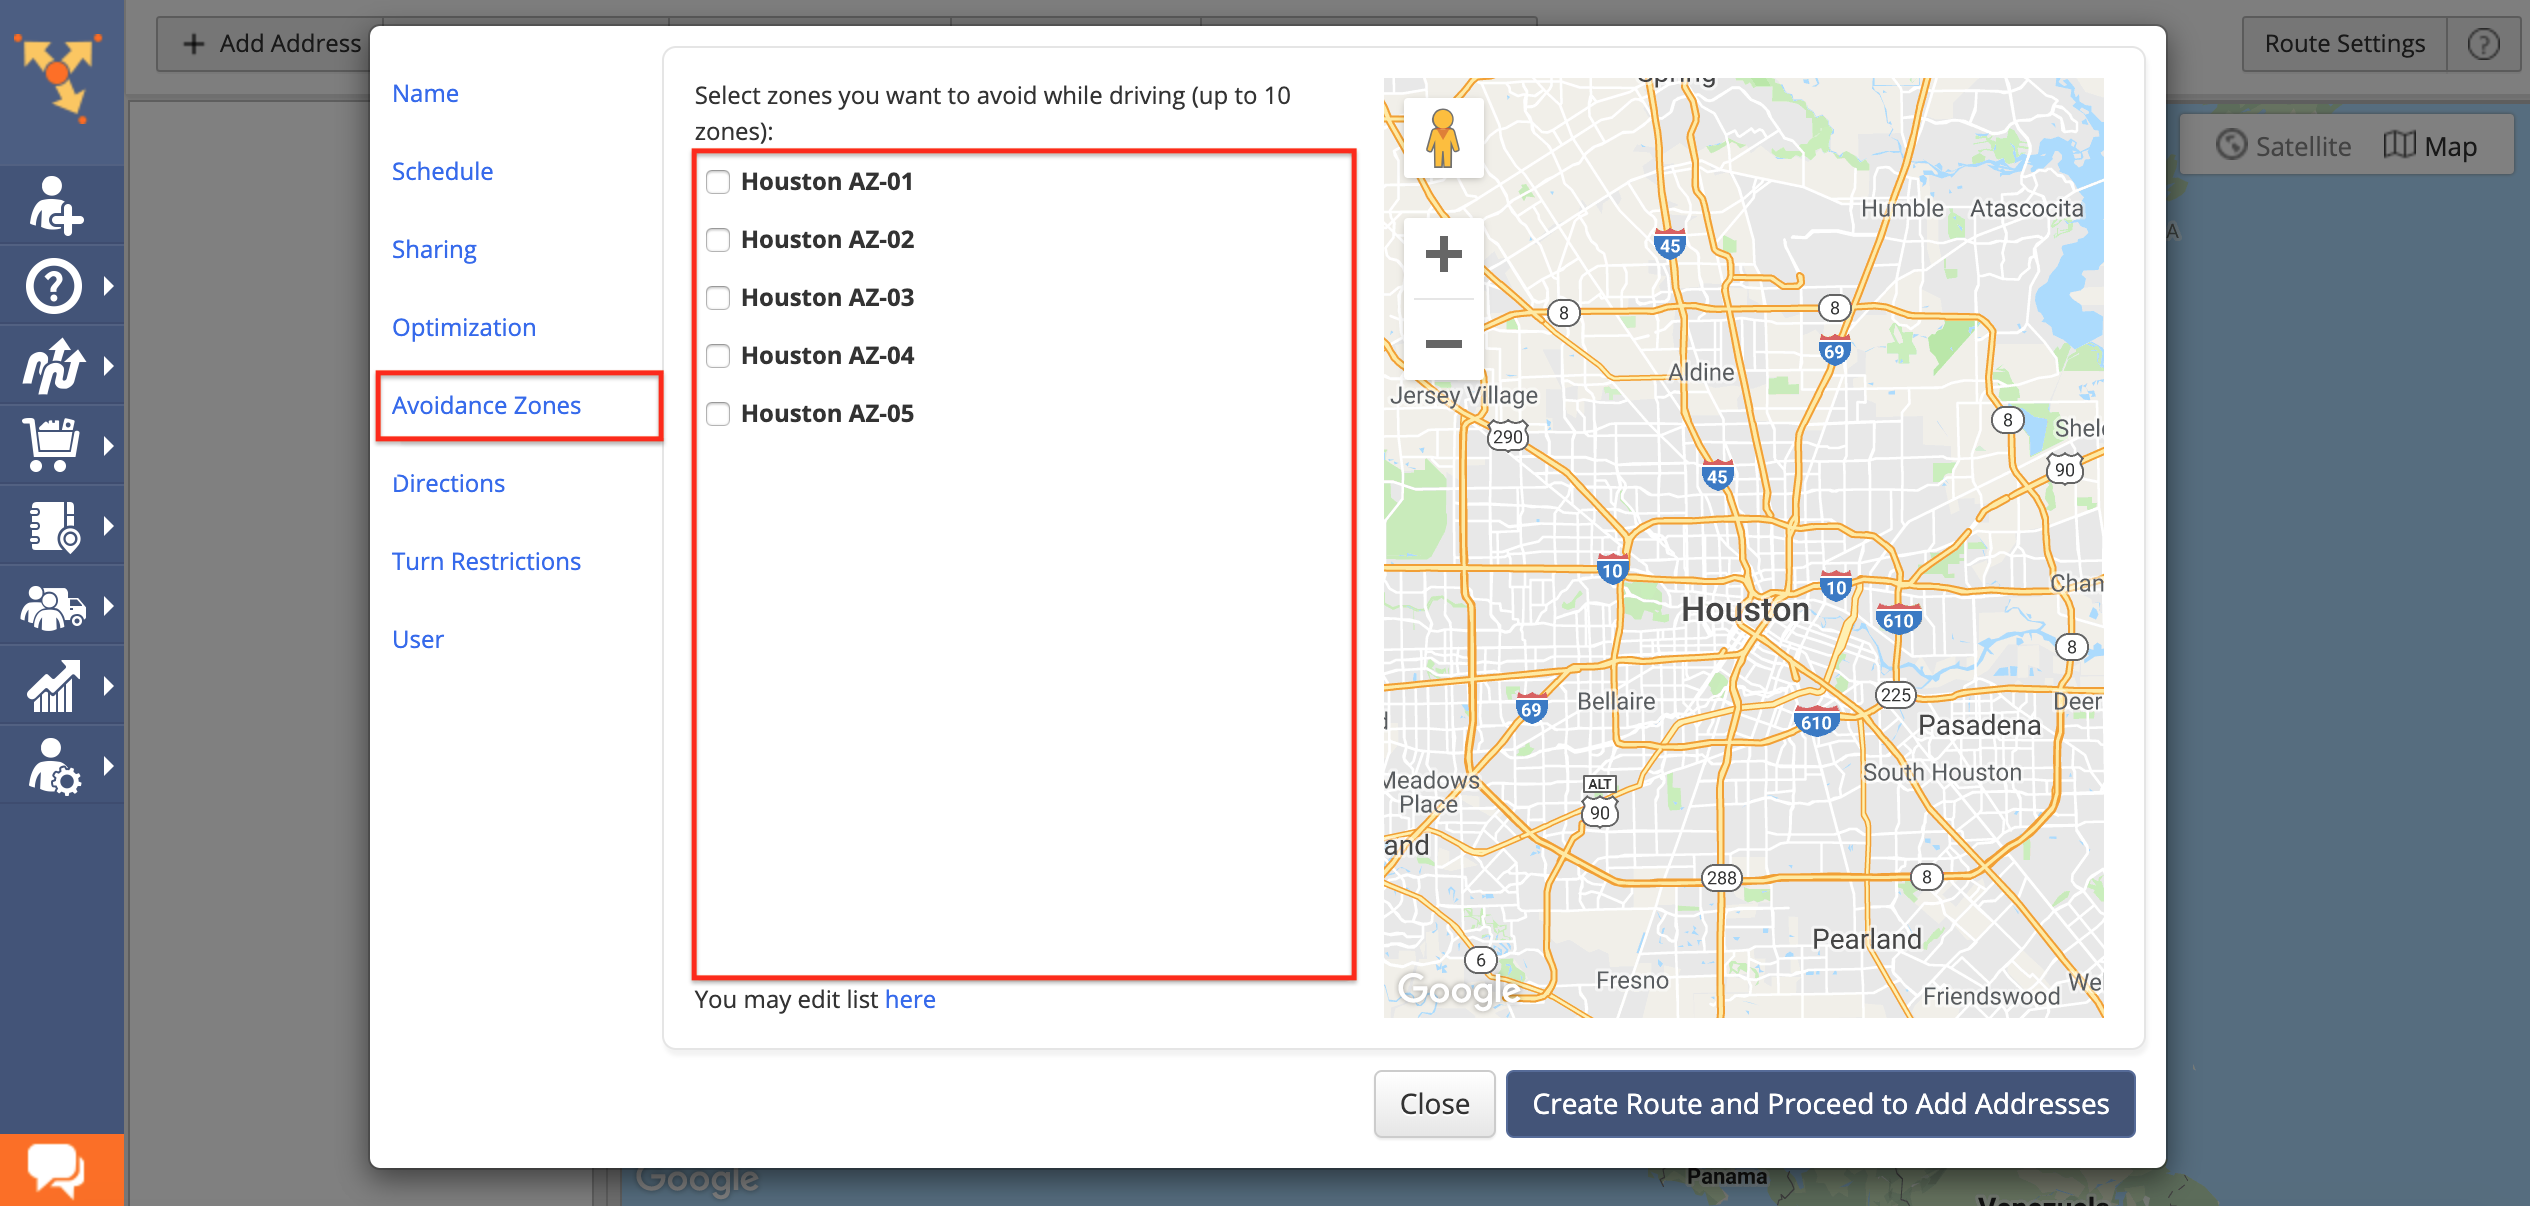 Showing how to create custom-shaped Avoidance Zones in Route4Me route planner